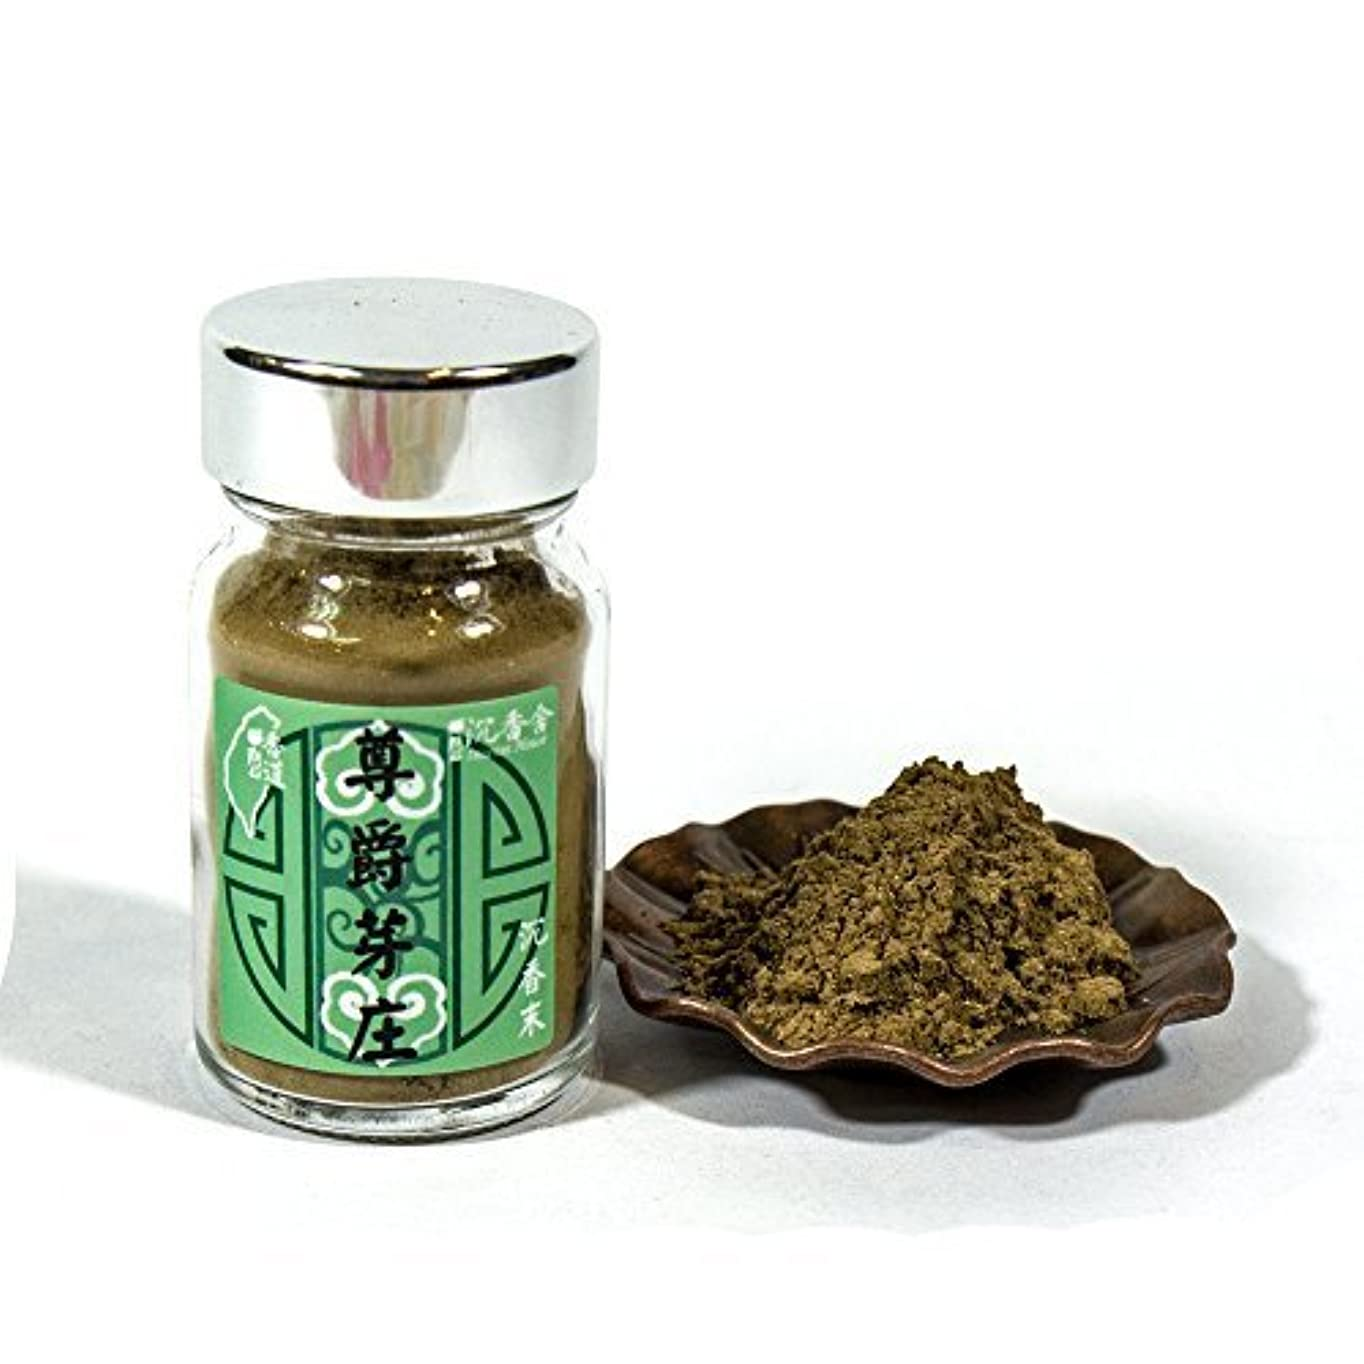 良さ一貫性のない親Agarwood Aloeswood Top Grade Old Stock NhaTrang Chen Xiang Incense Powder 10g by IncenseHouse - Raw Material [...